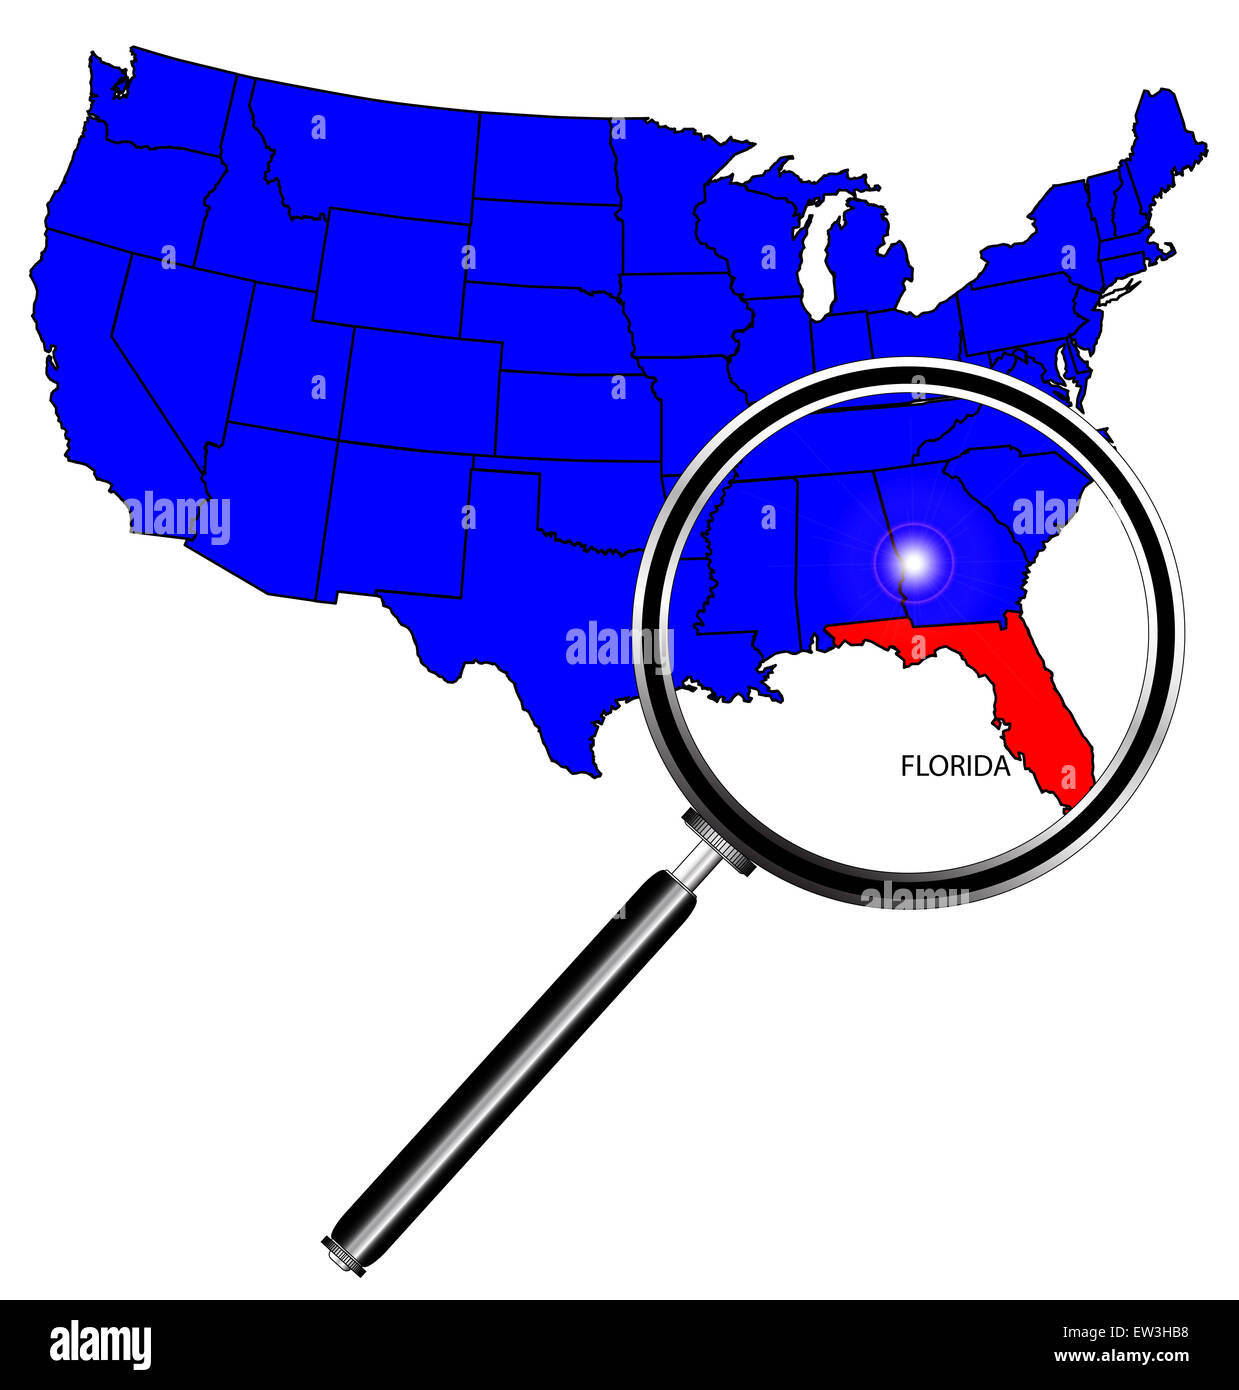 Florida State Outline Set Into A Map Of The United States Of - Us map florida state